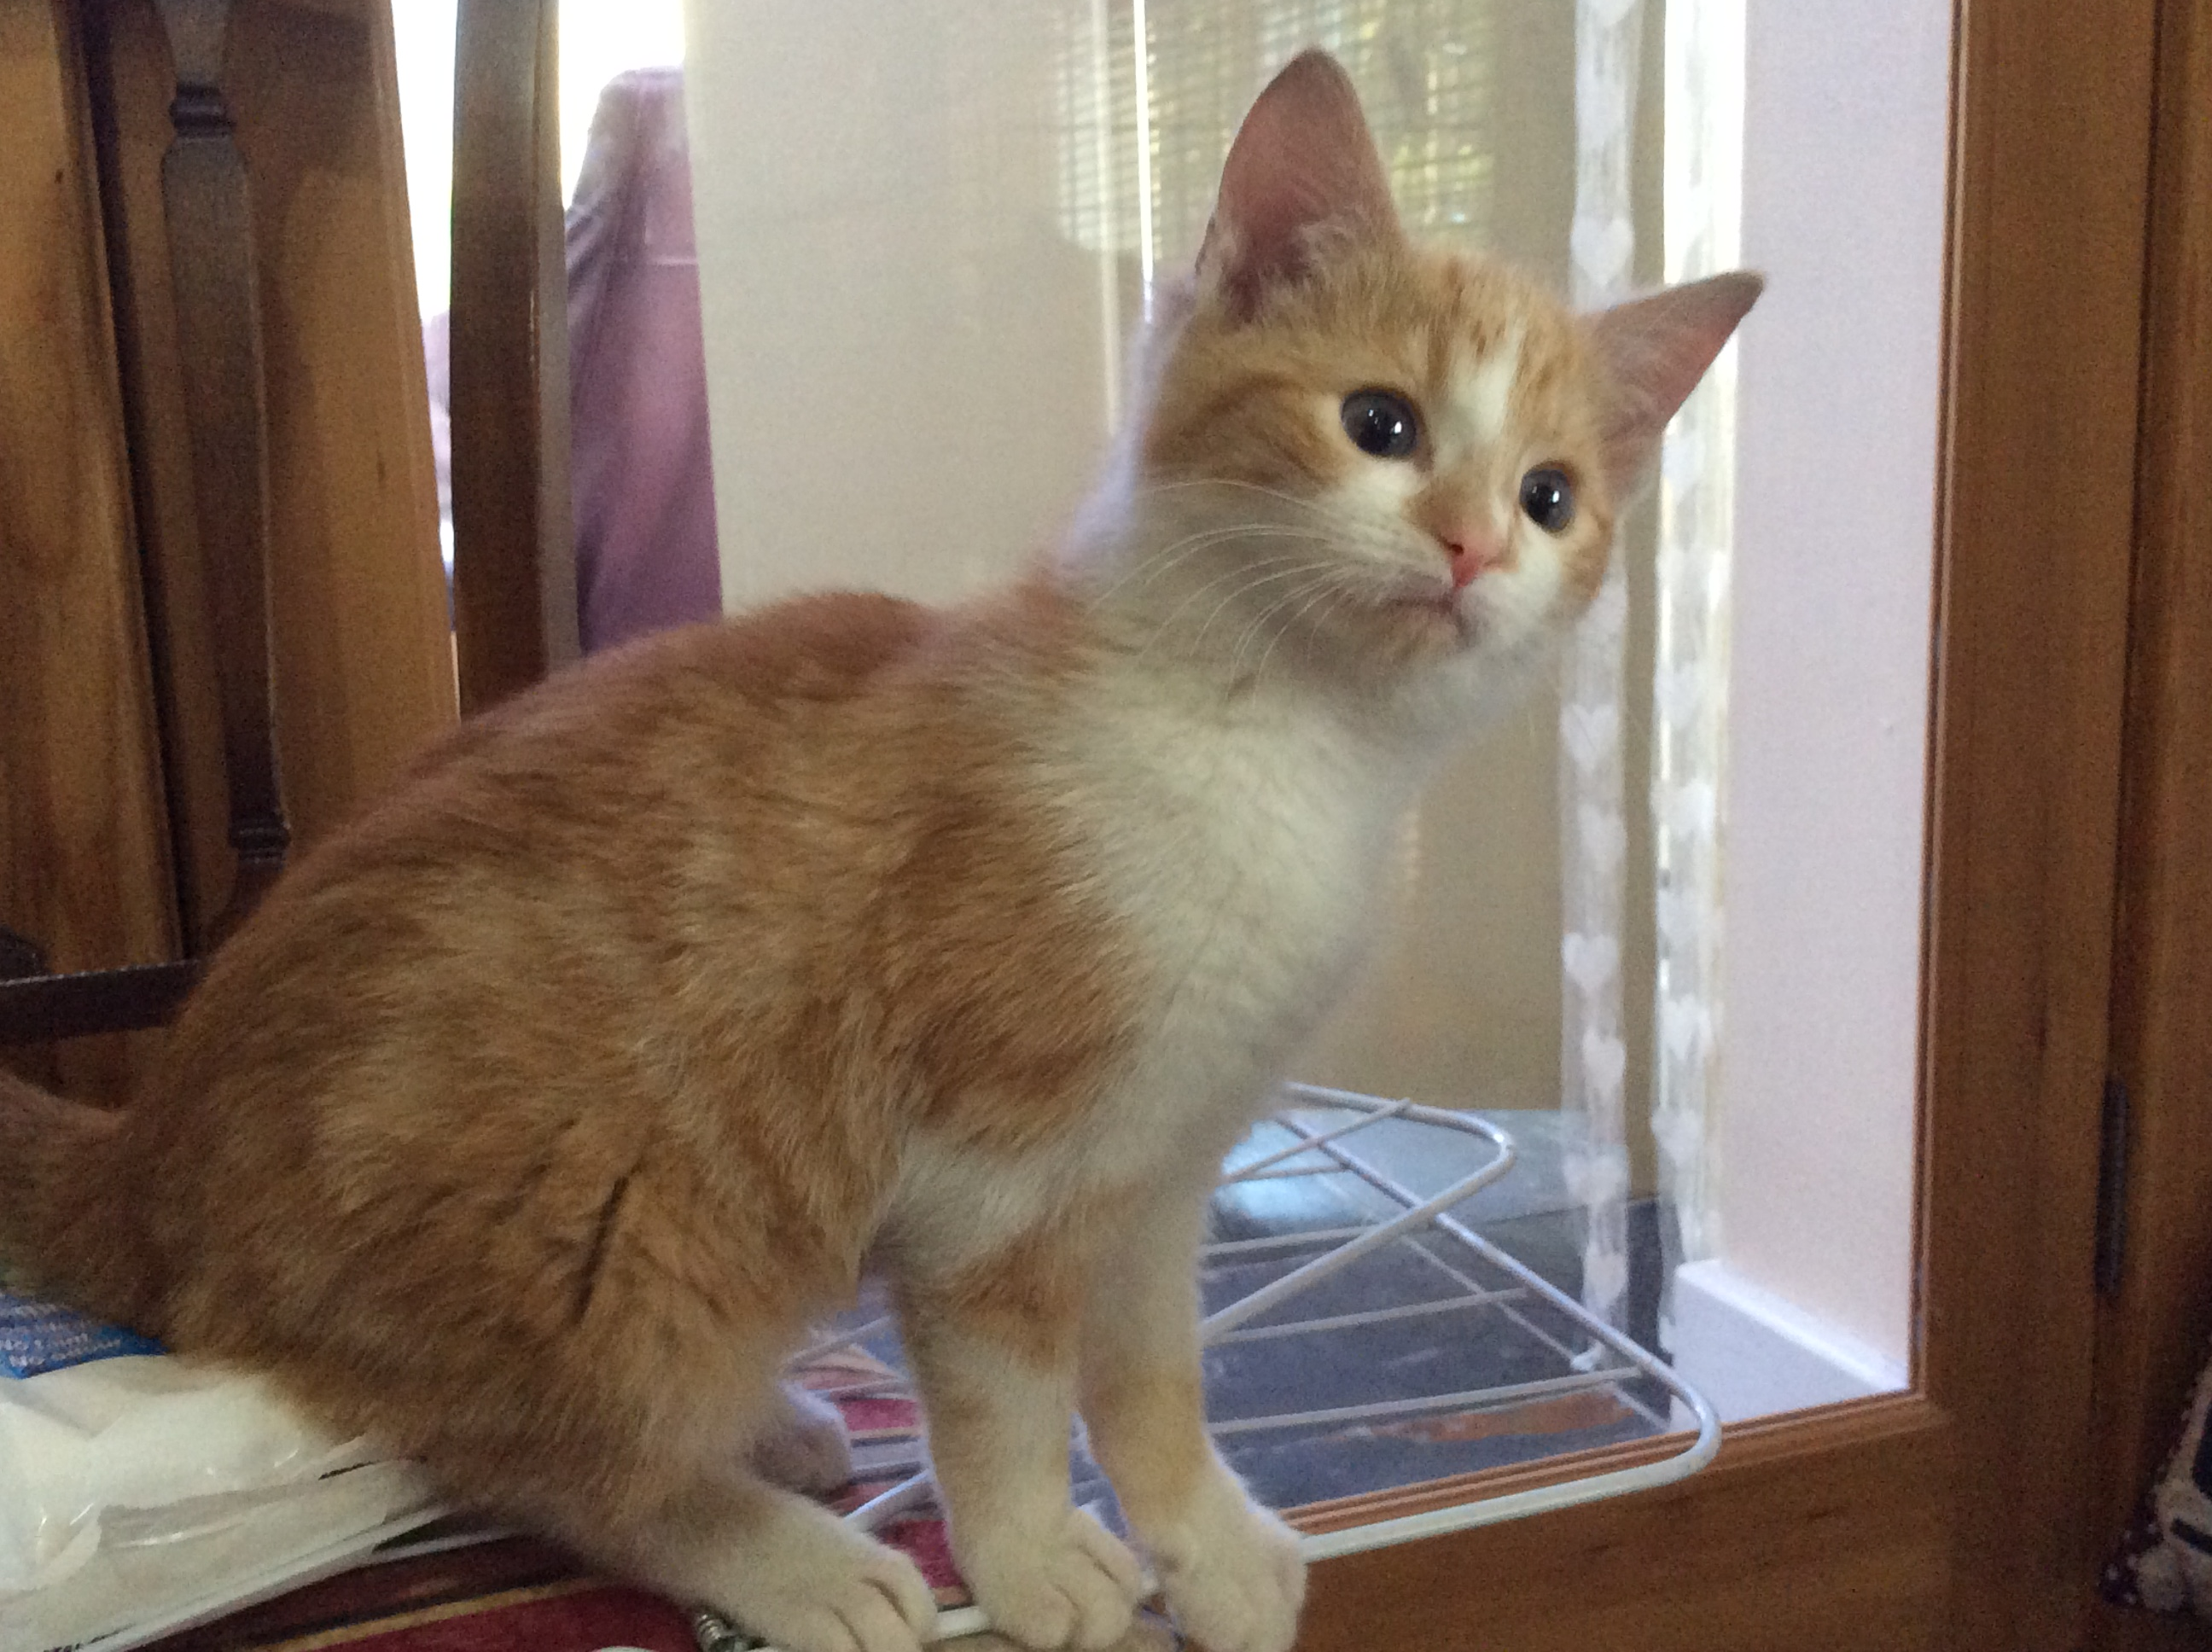 RE-HOMED: Kitten in foster care.